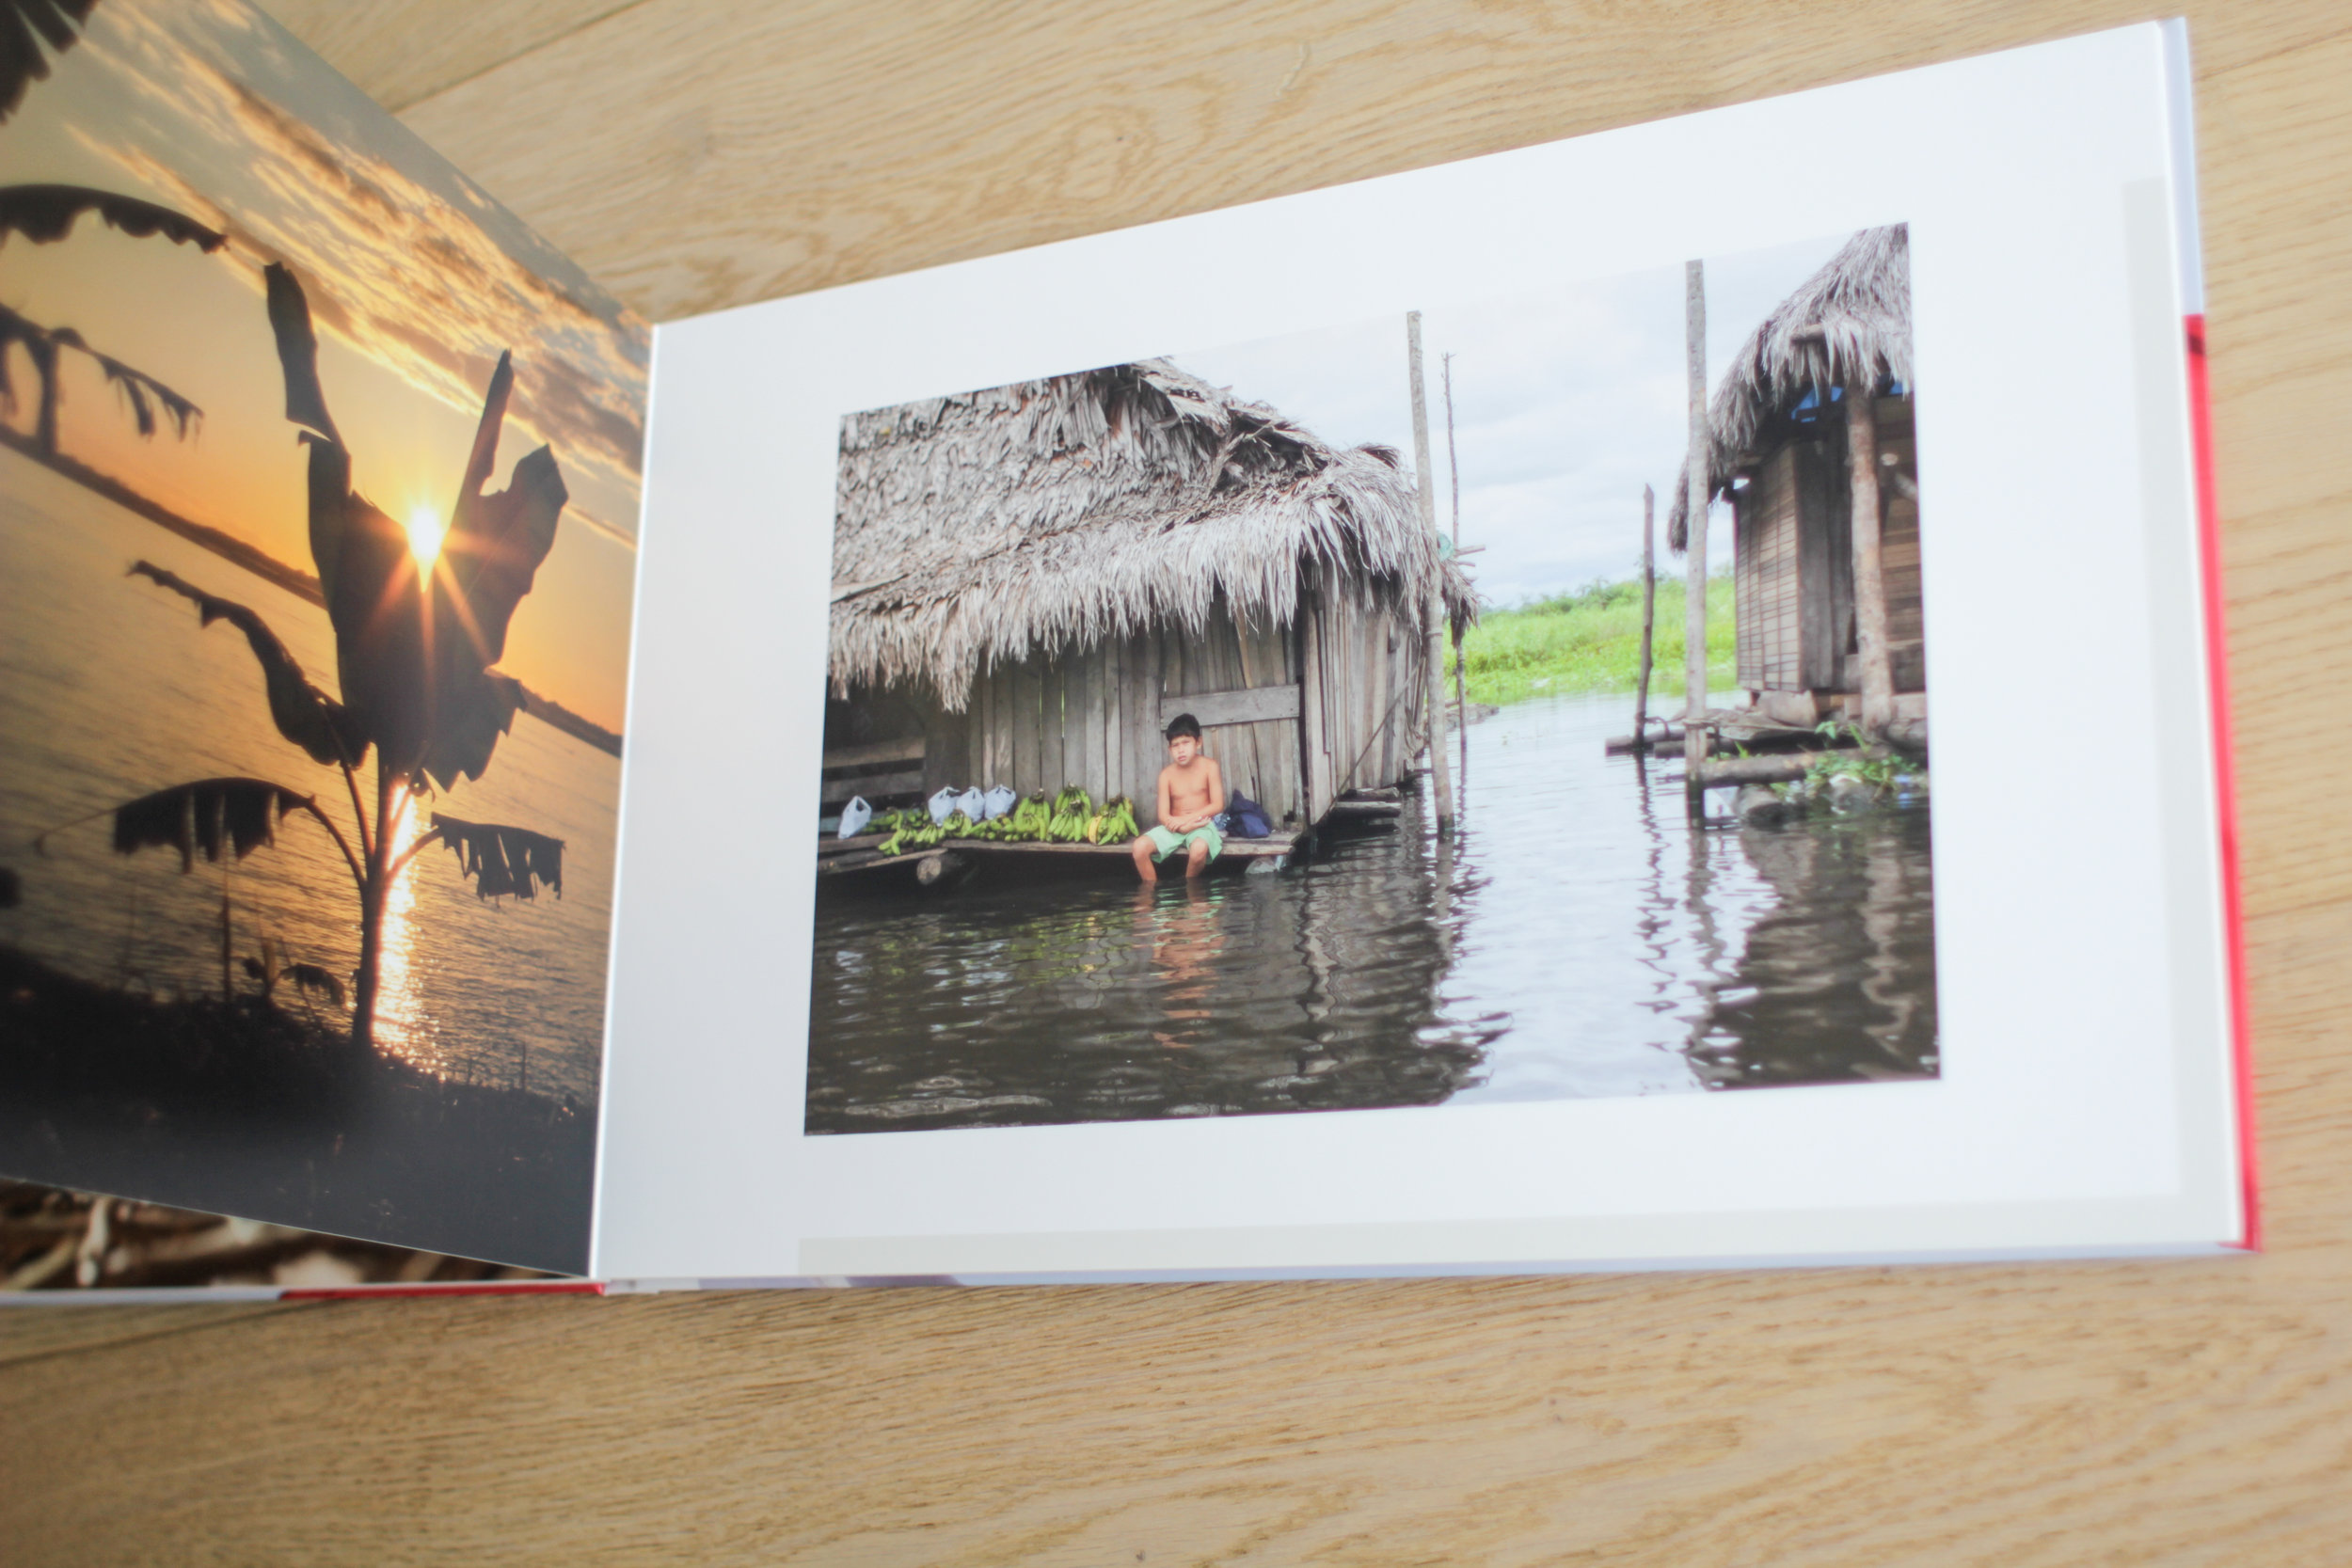 The Amazon in Peru reflected in this Saal Digital UK Photo Book Product Review by Geraint Rowland Photography.